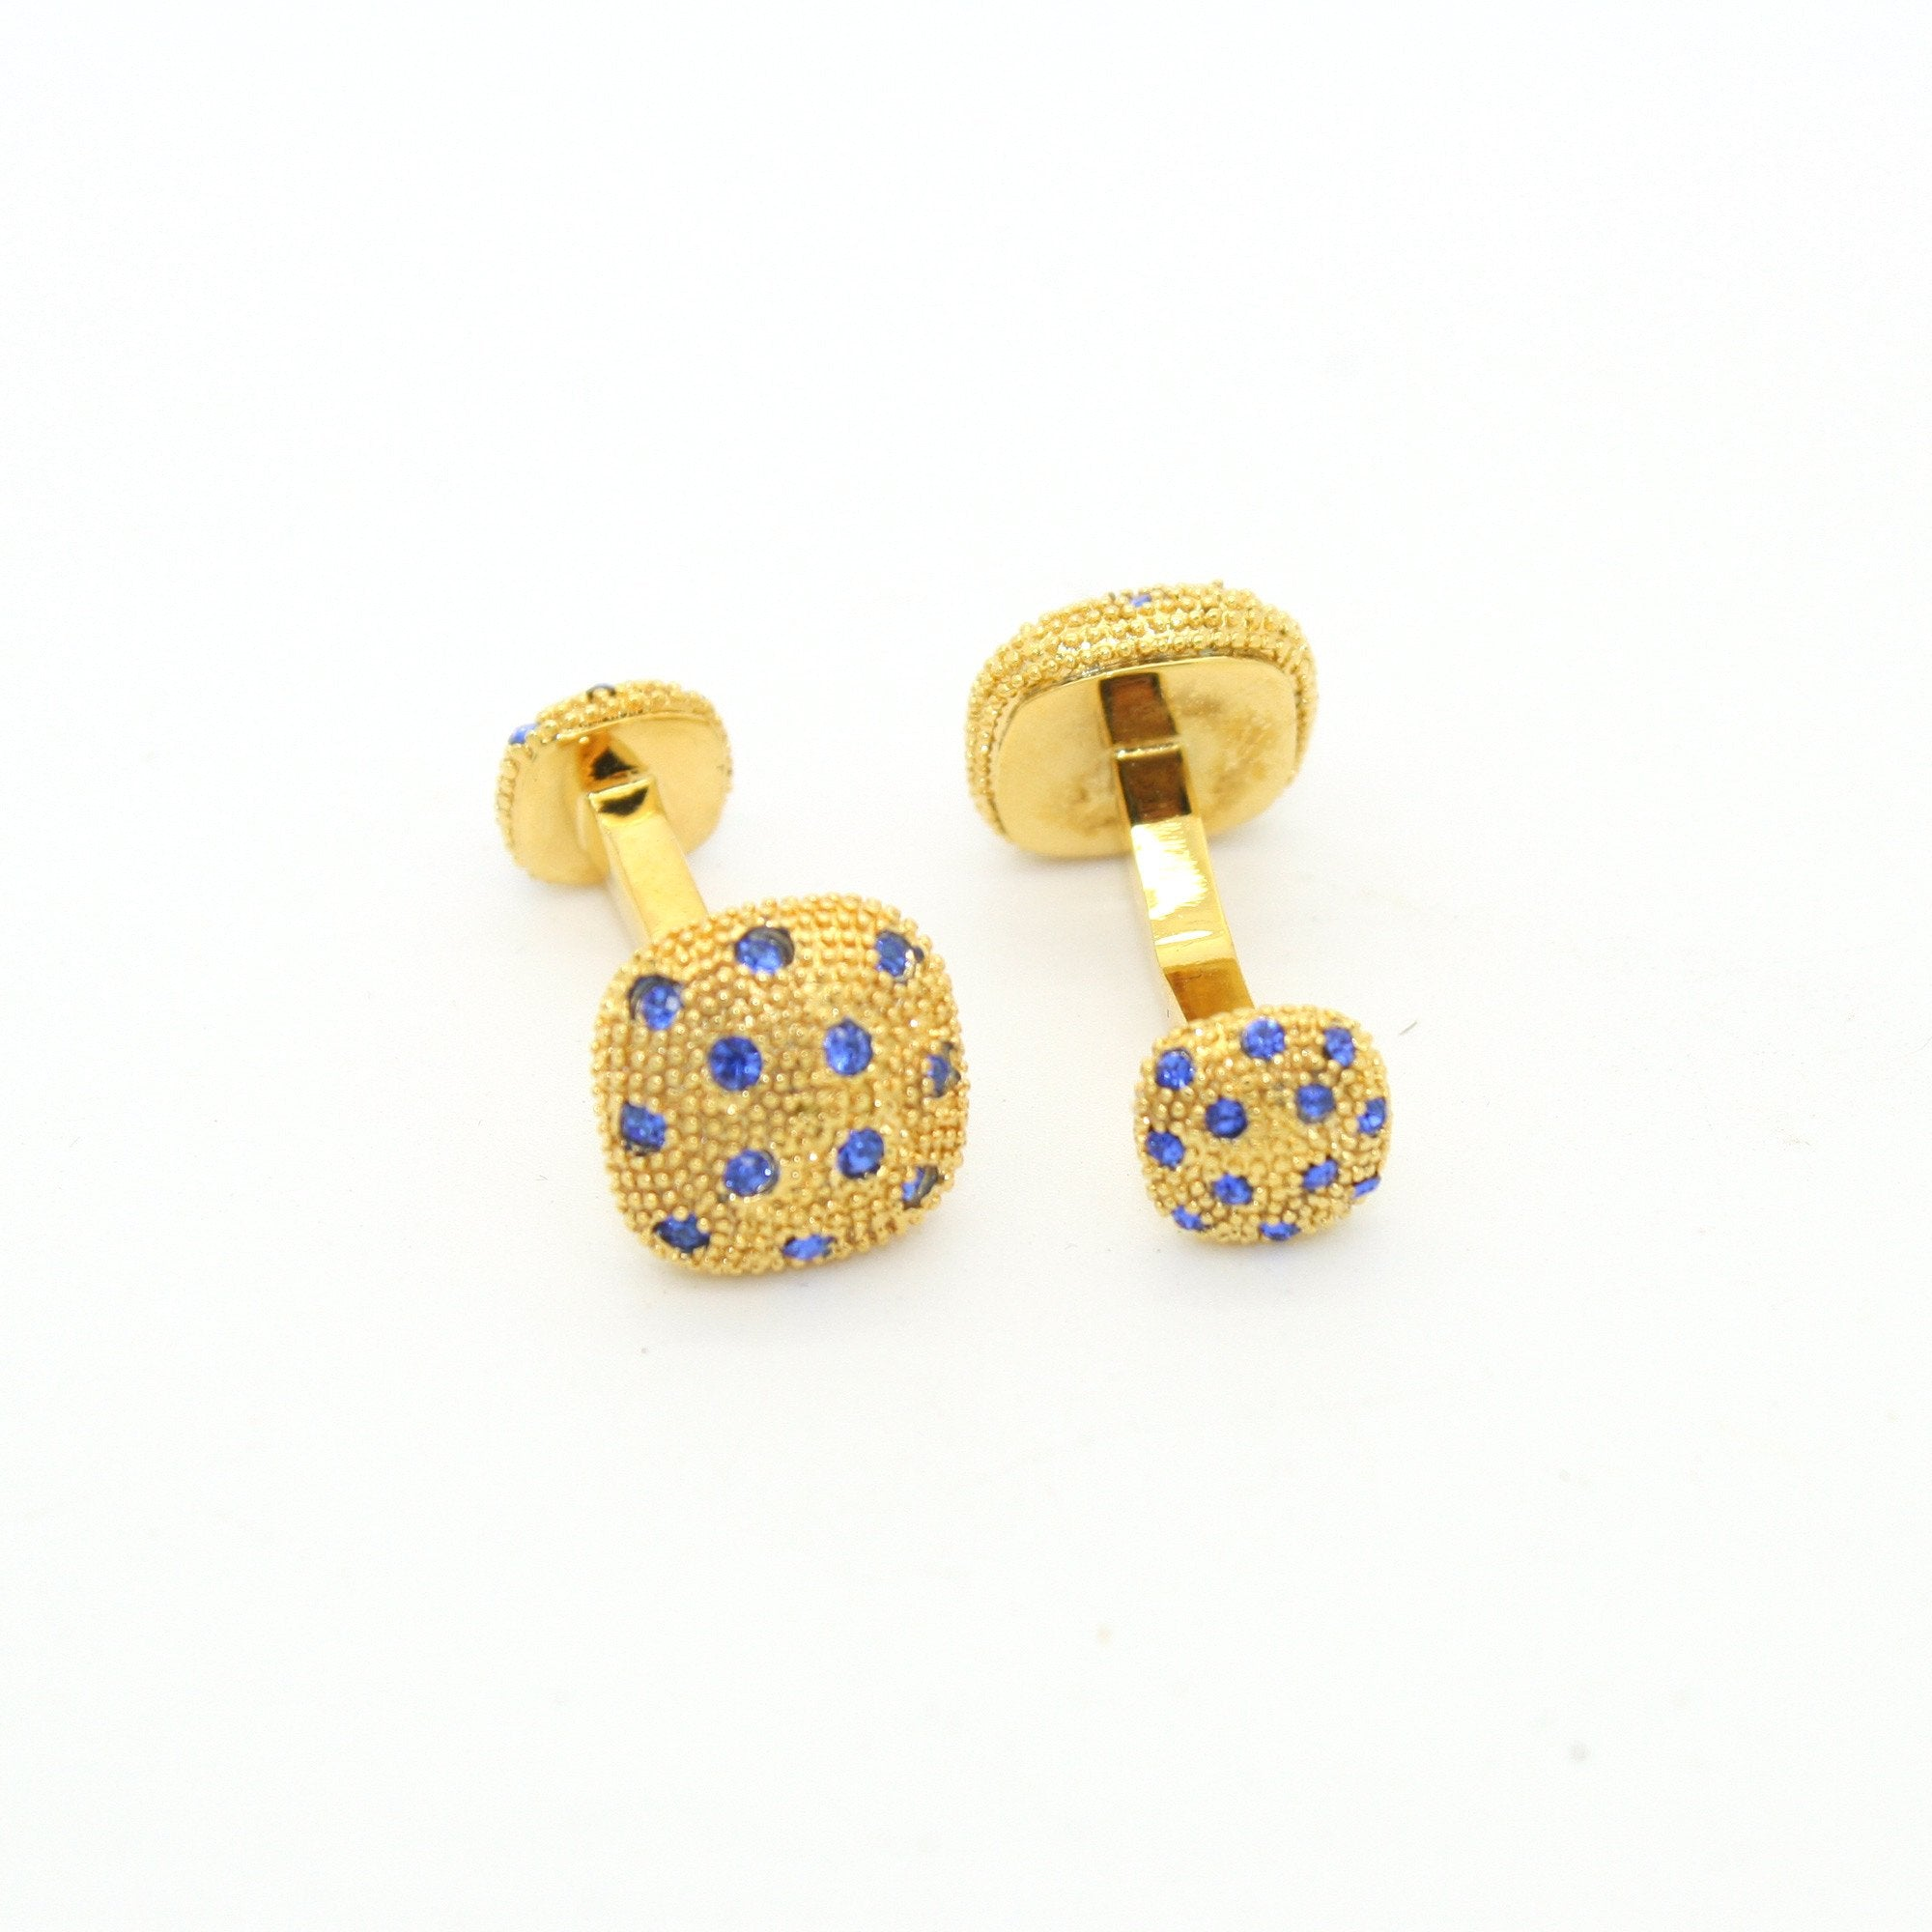 Goldtone Blue Gemstone Metal Cuff Links With Jewelry Box - Giorgio's Menswear